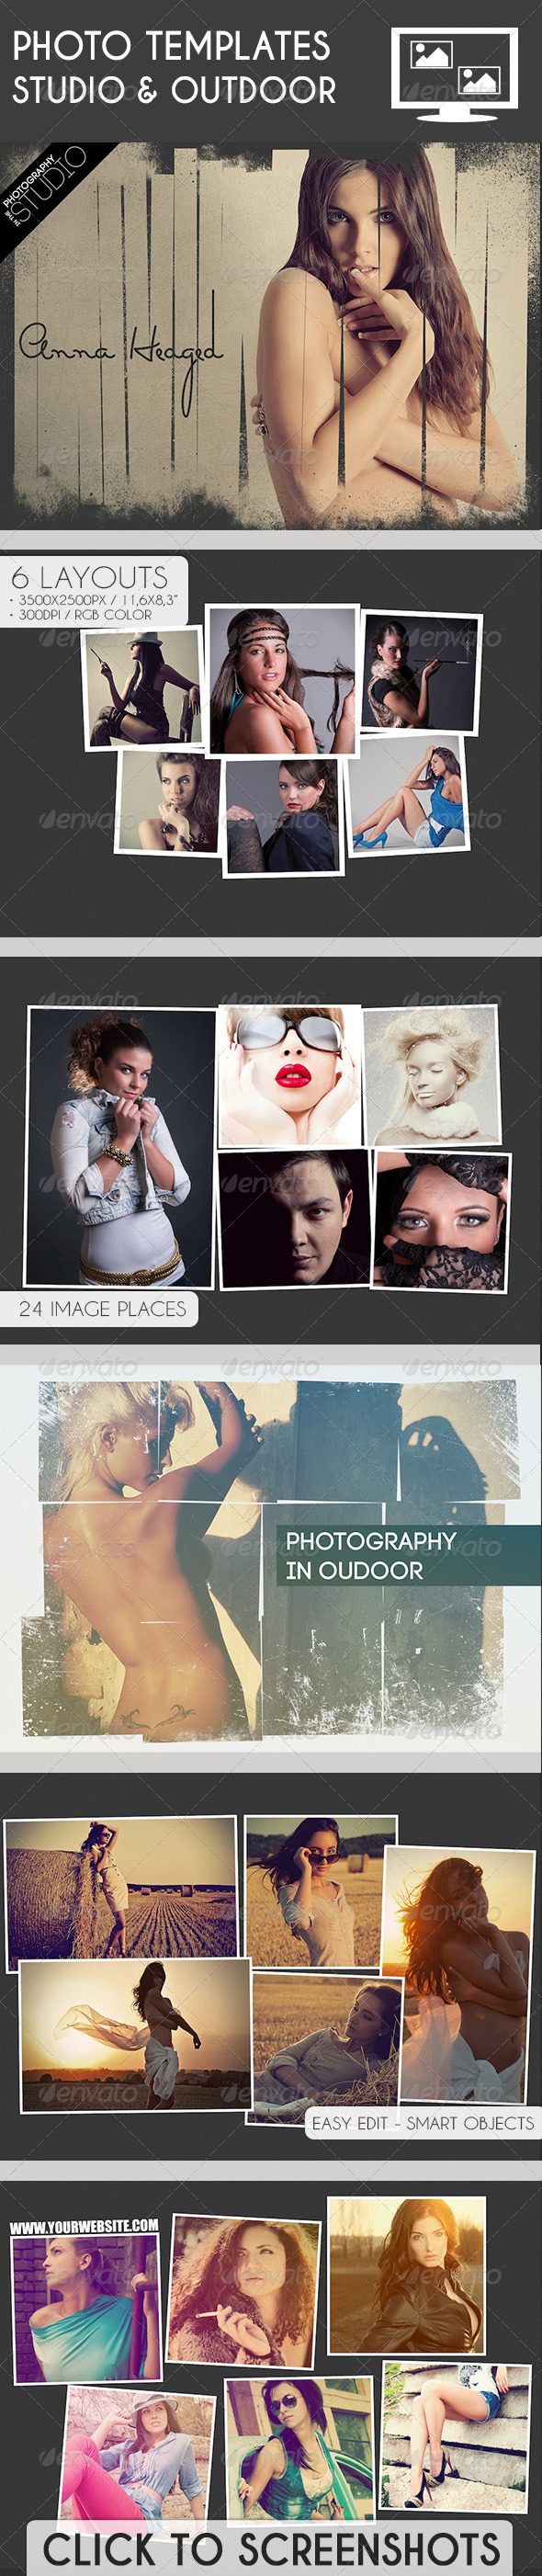 Photo Templates Studio & Outdoor